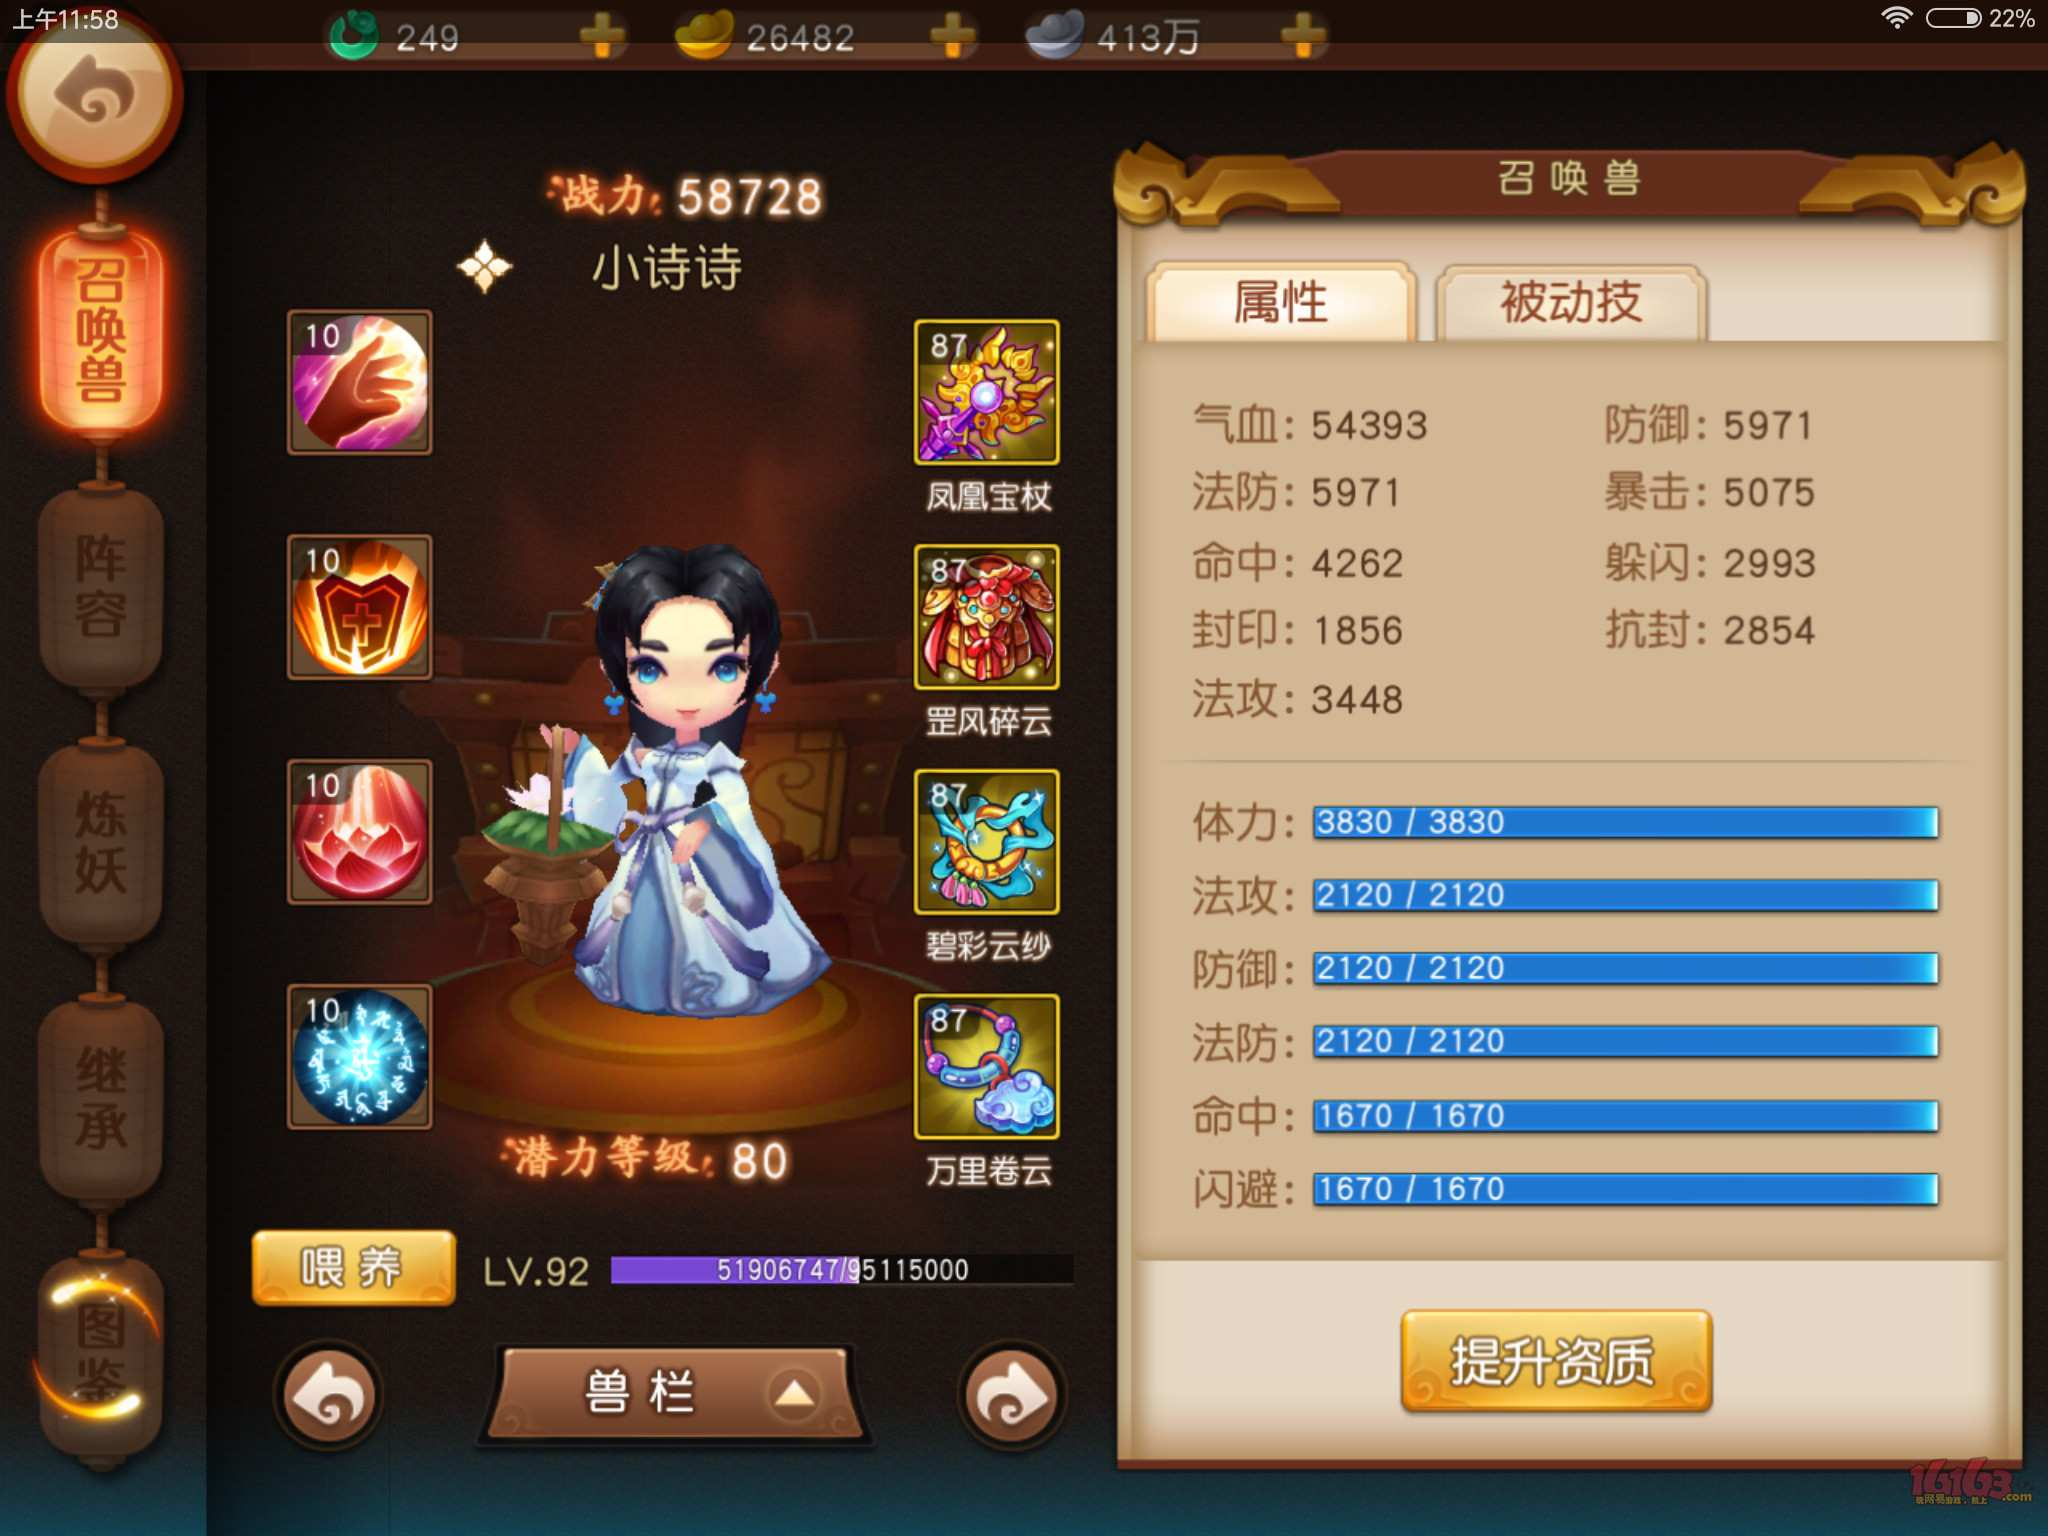 Screenshot_2017-01-21-11-58-02-505_com.netease.mh.jpg